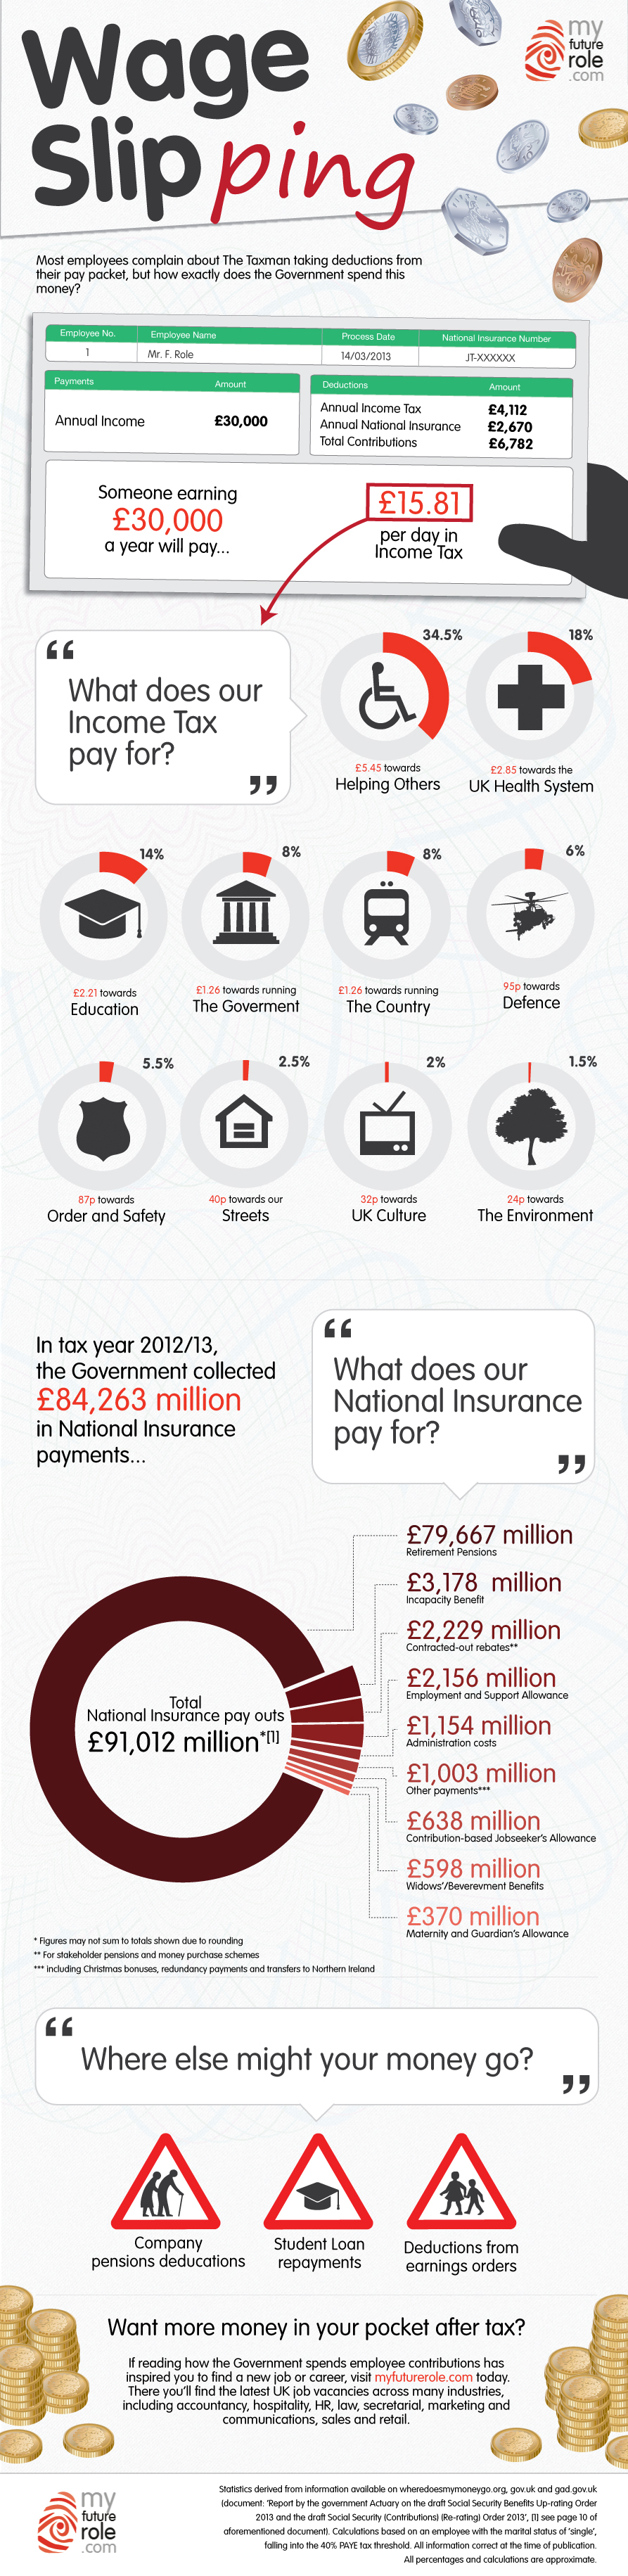 How Does the UK Government Spend Your Income Tax & National Insurance?